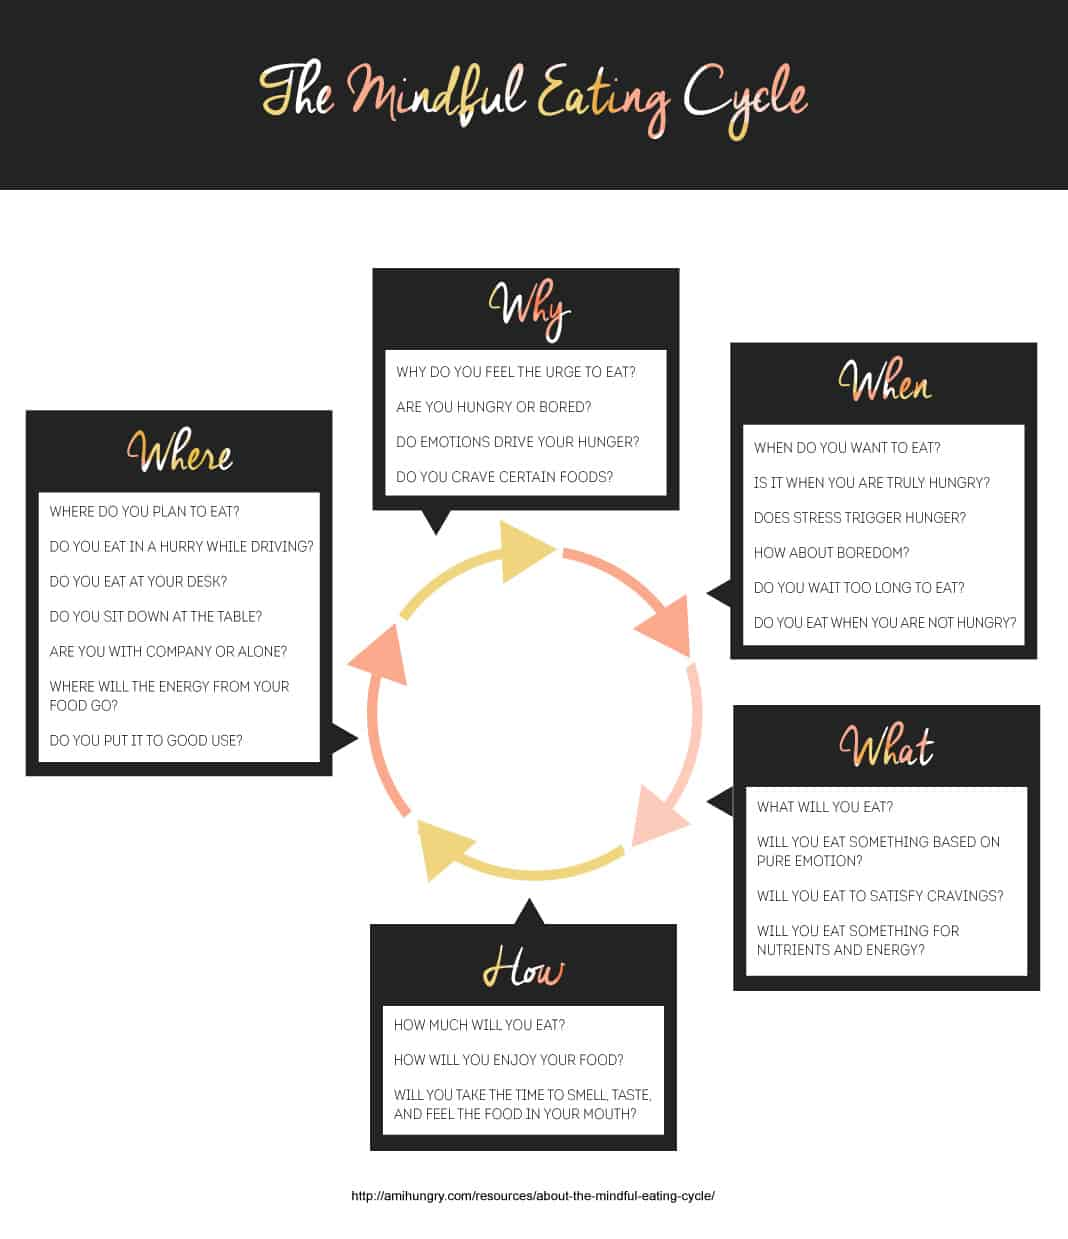 The Mindful Eating Cycle